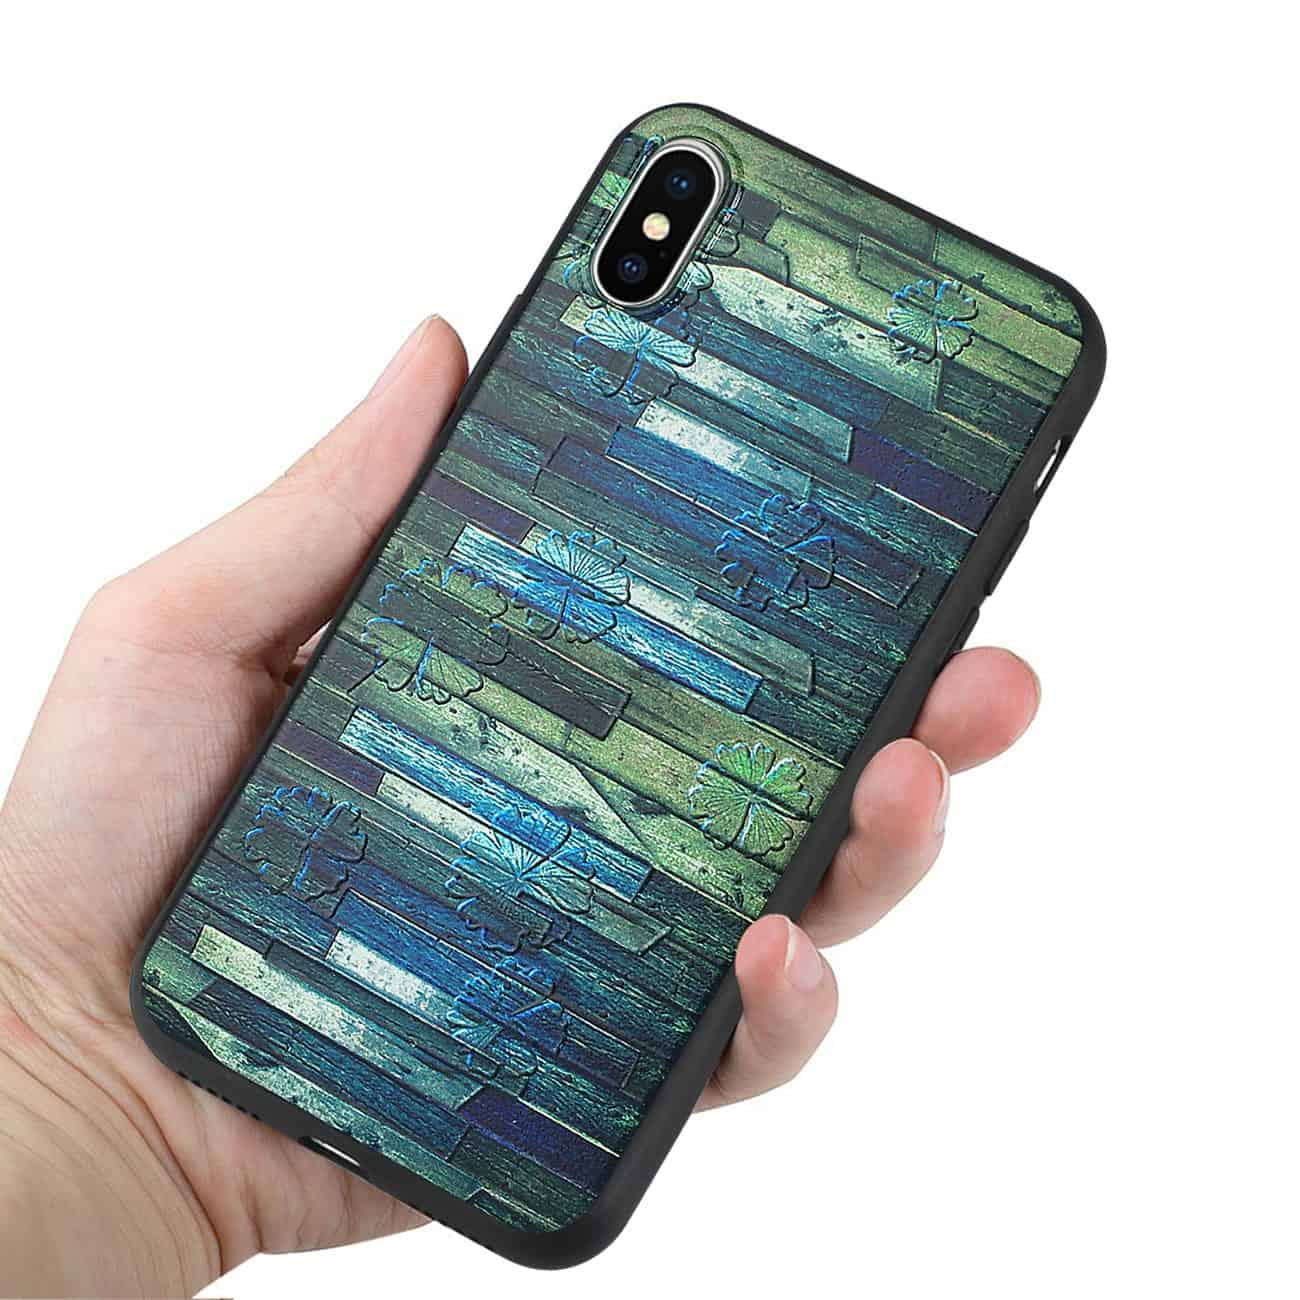 IPHONE X EMBOSSED WOOD PATTERN DESIGN TPU CASE WITH MULTI-LETTER